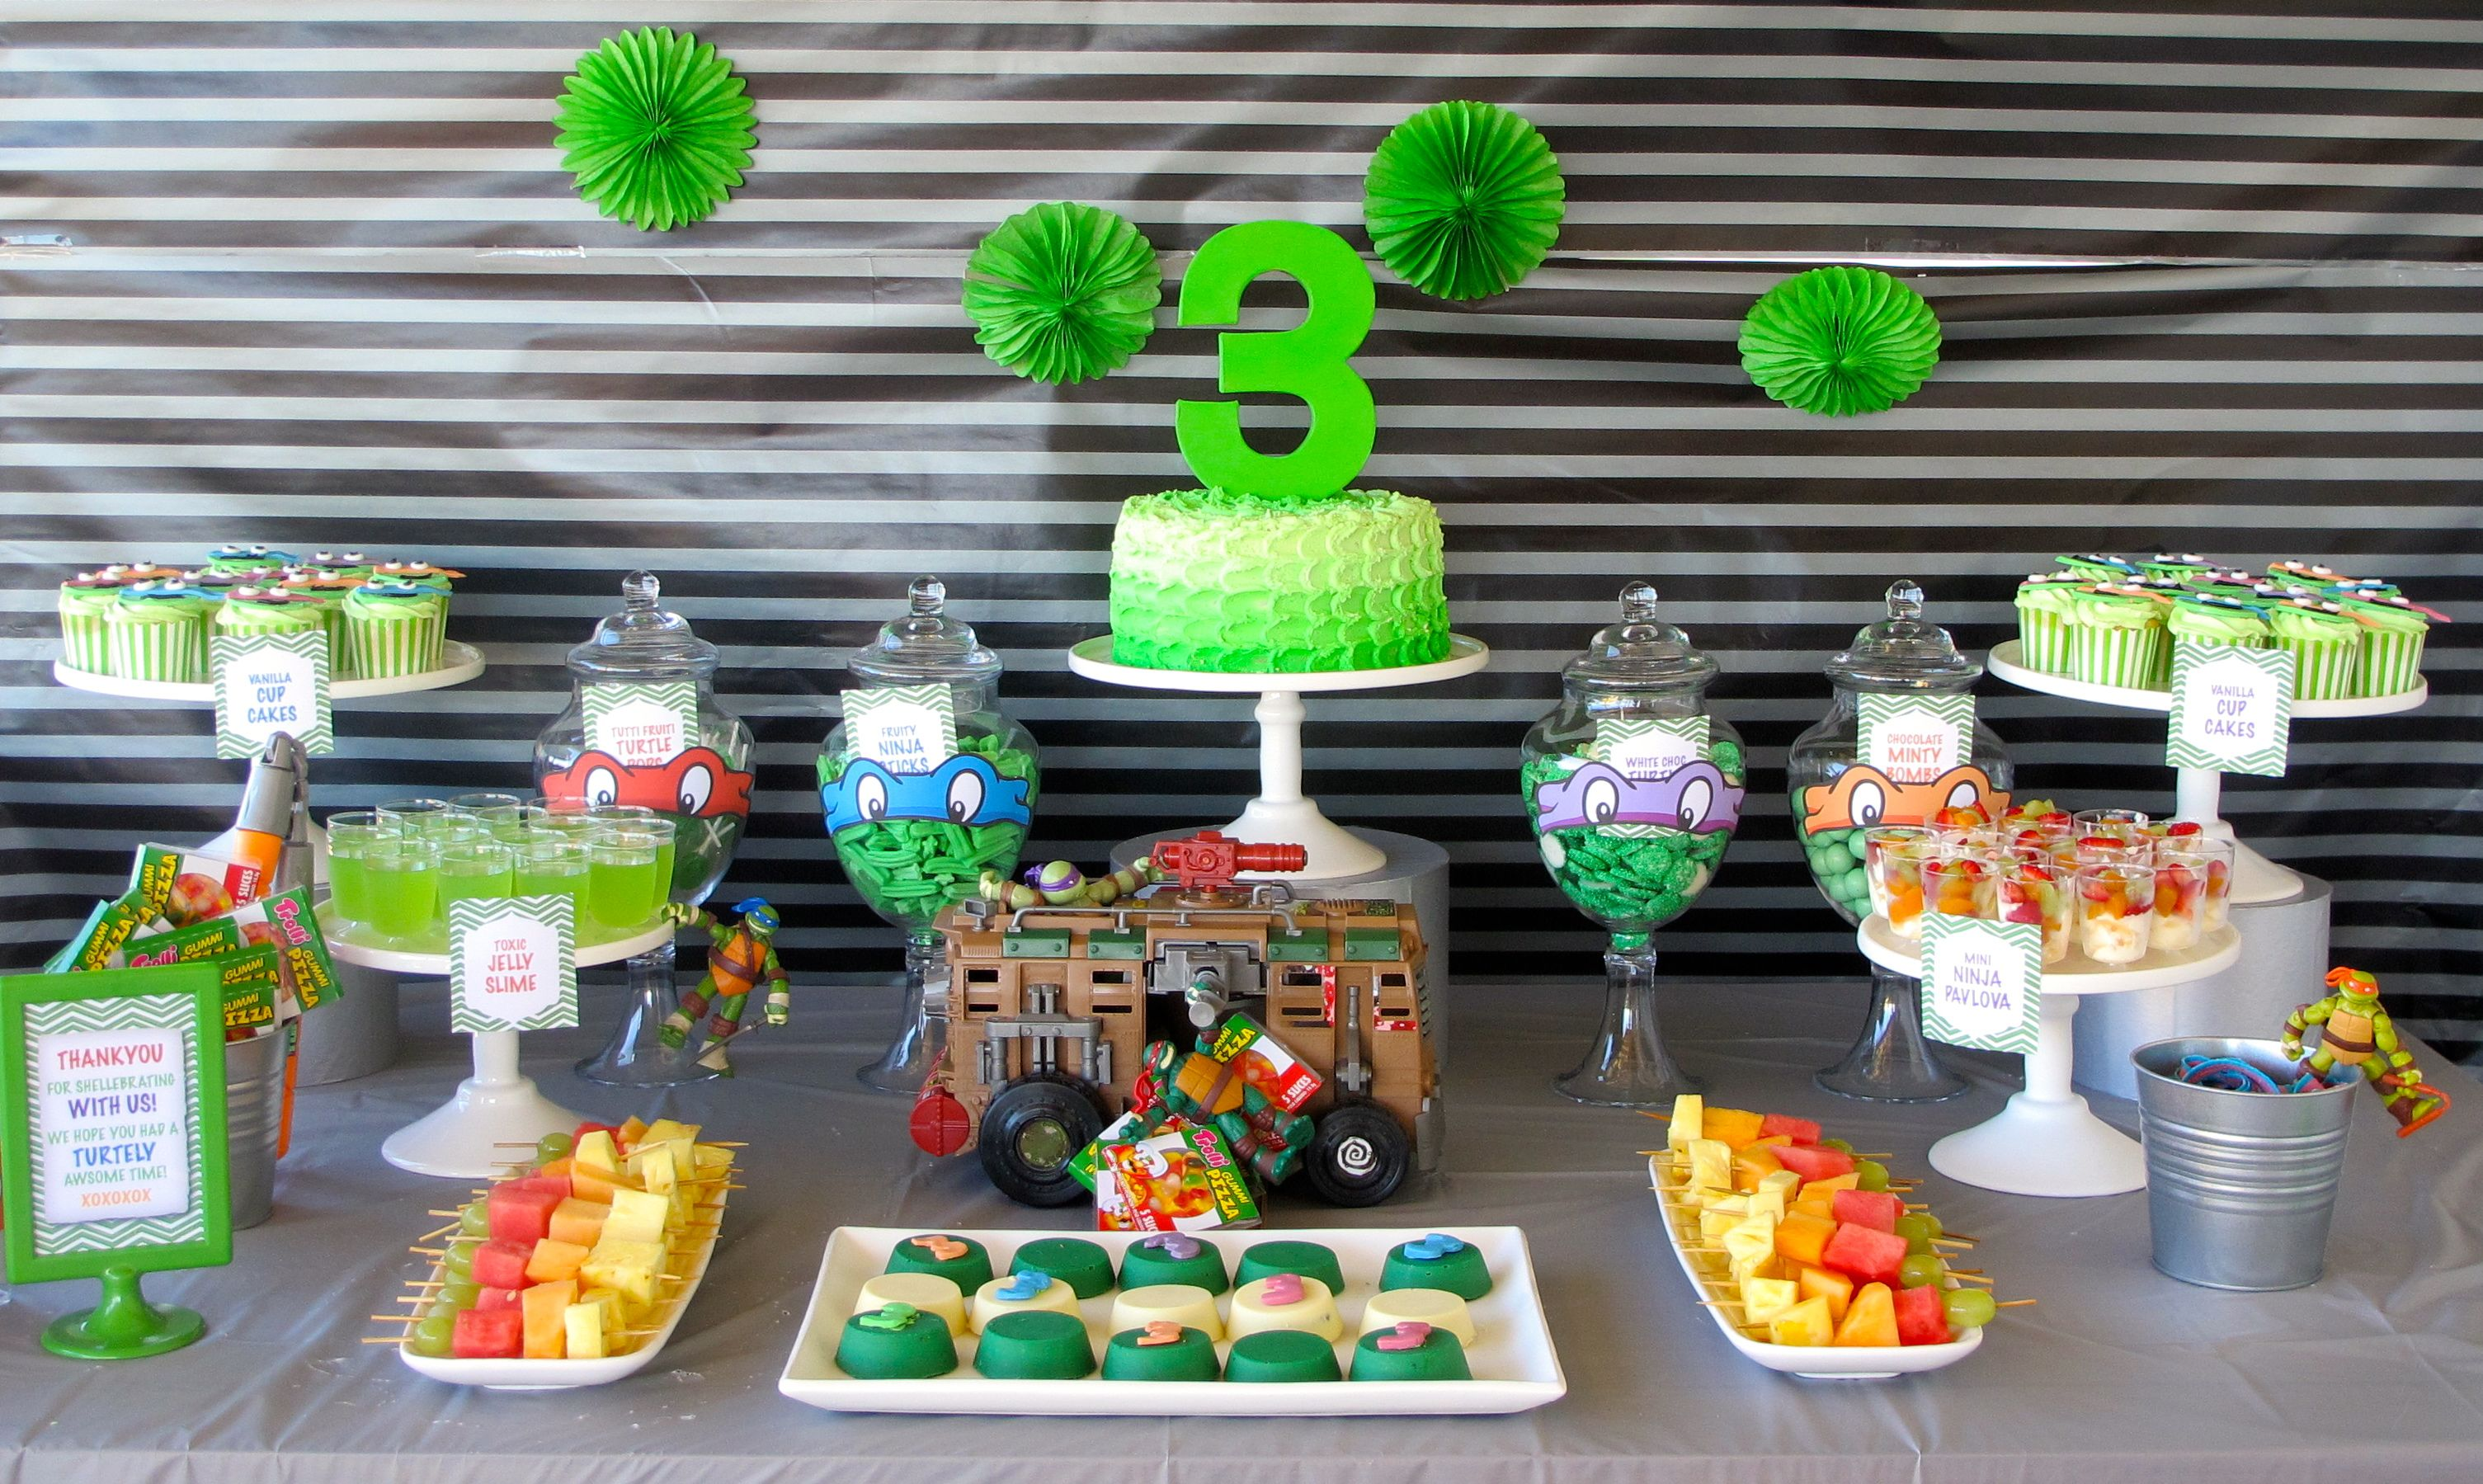 Teenage Mutant Ninja Turtle Tmnt Dessert And Candy Bar Candy Buffet Design Styl Birthday Party Desserts Ninja Turtles Birthday Party Ninja Turtle Theme Party